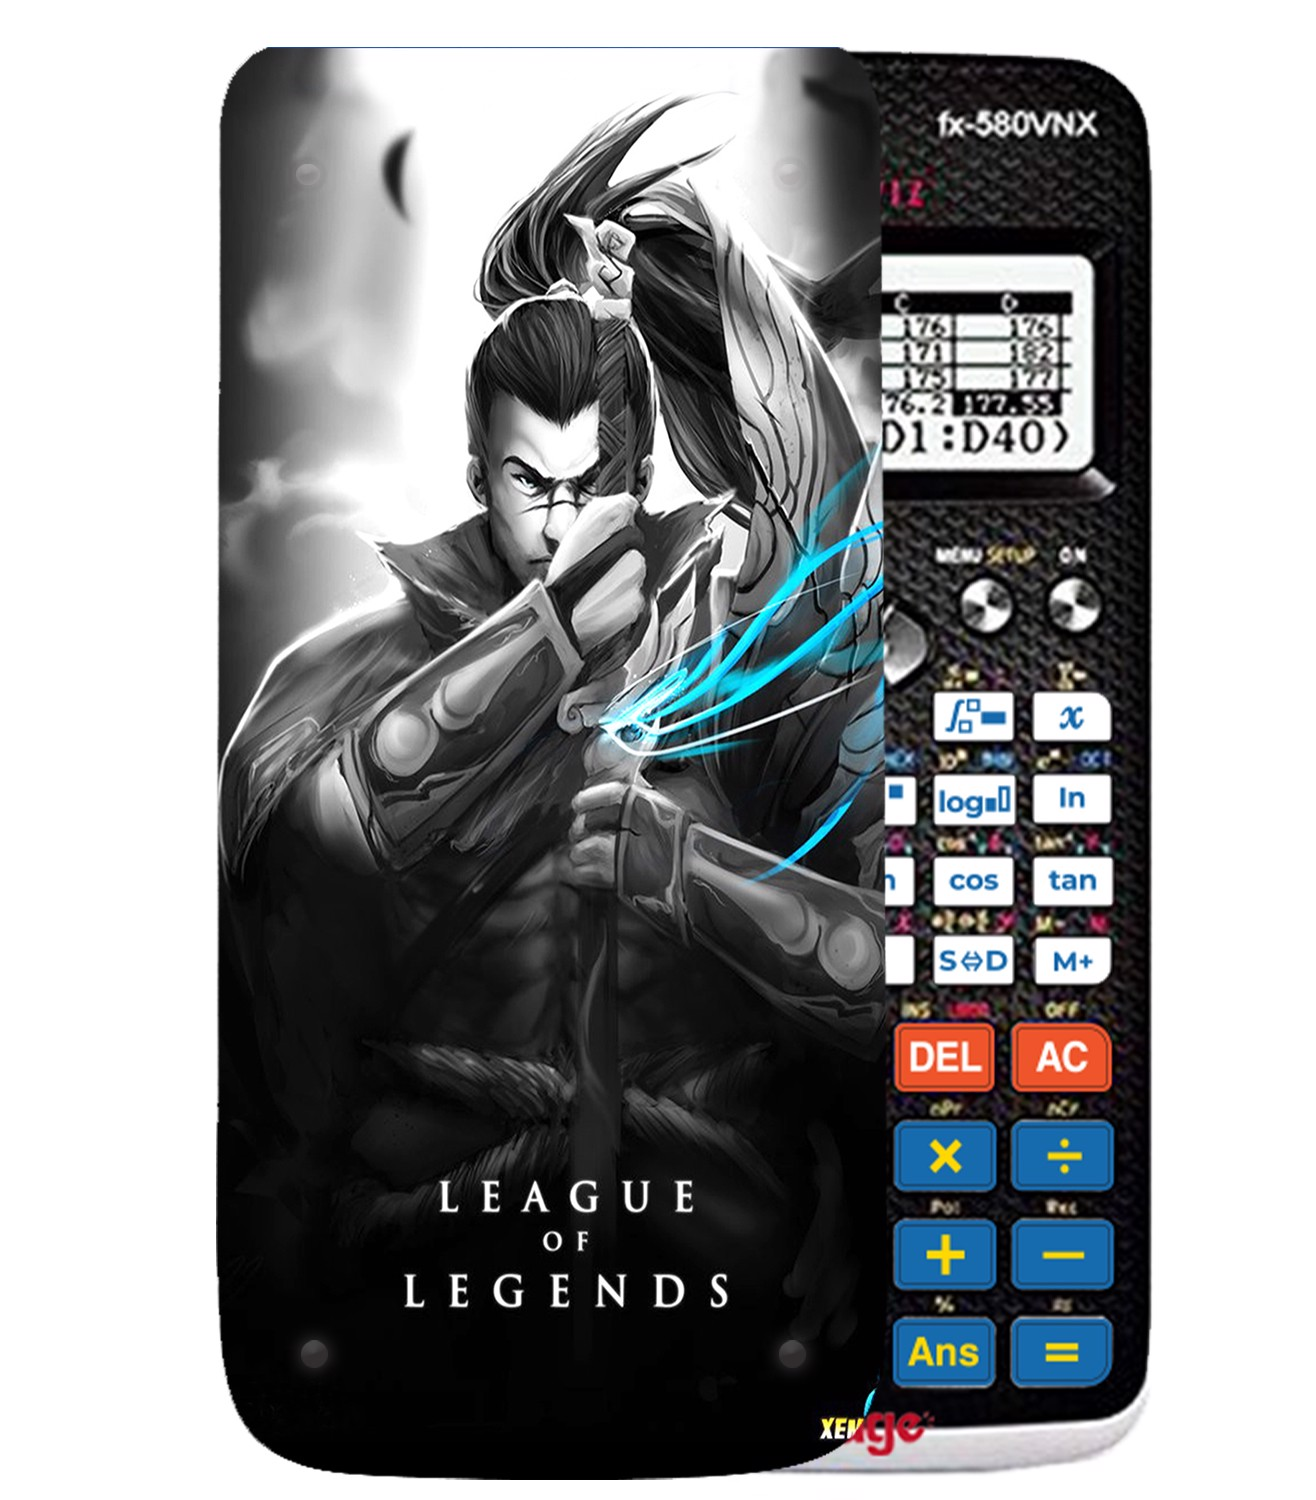 Ốp máy tính Casio FX 580 VNX League Of Legend 069